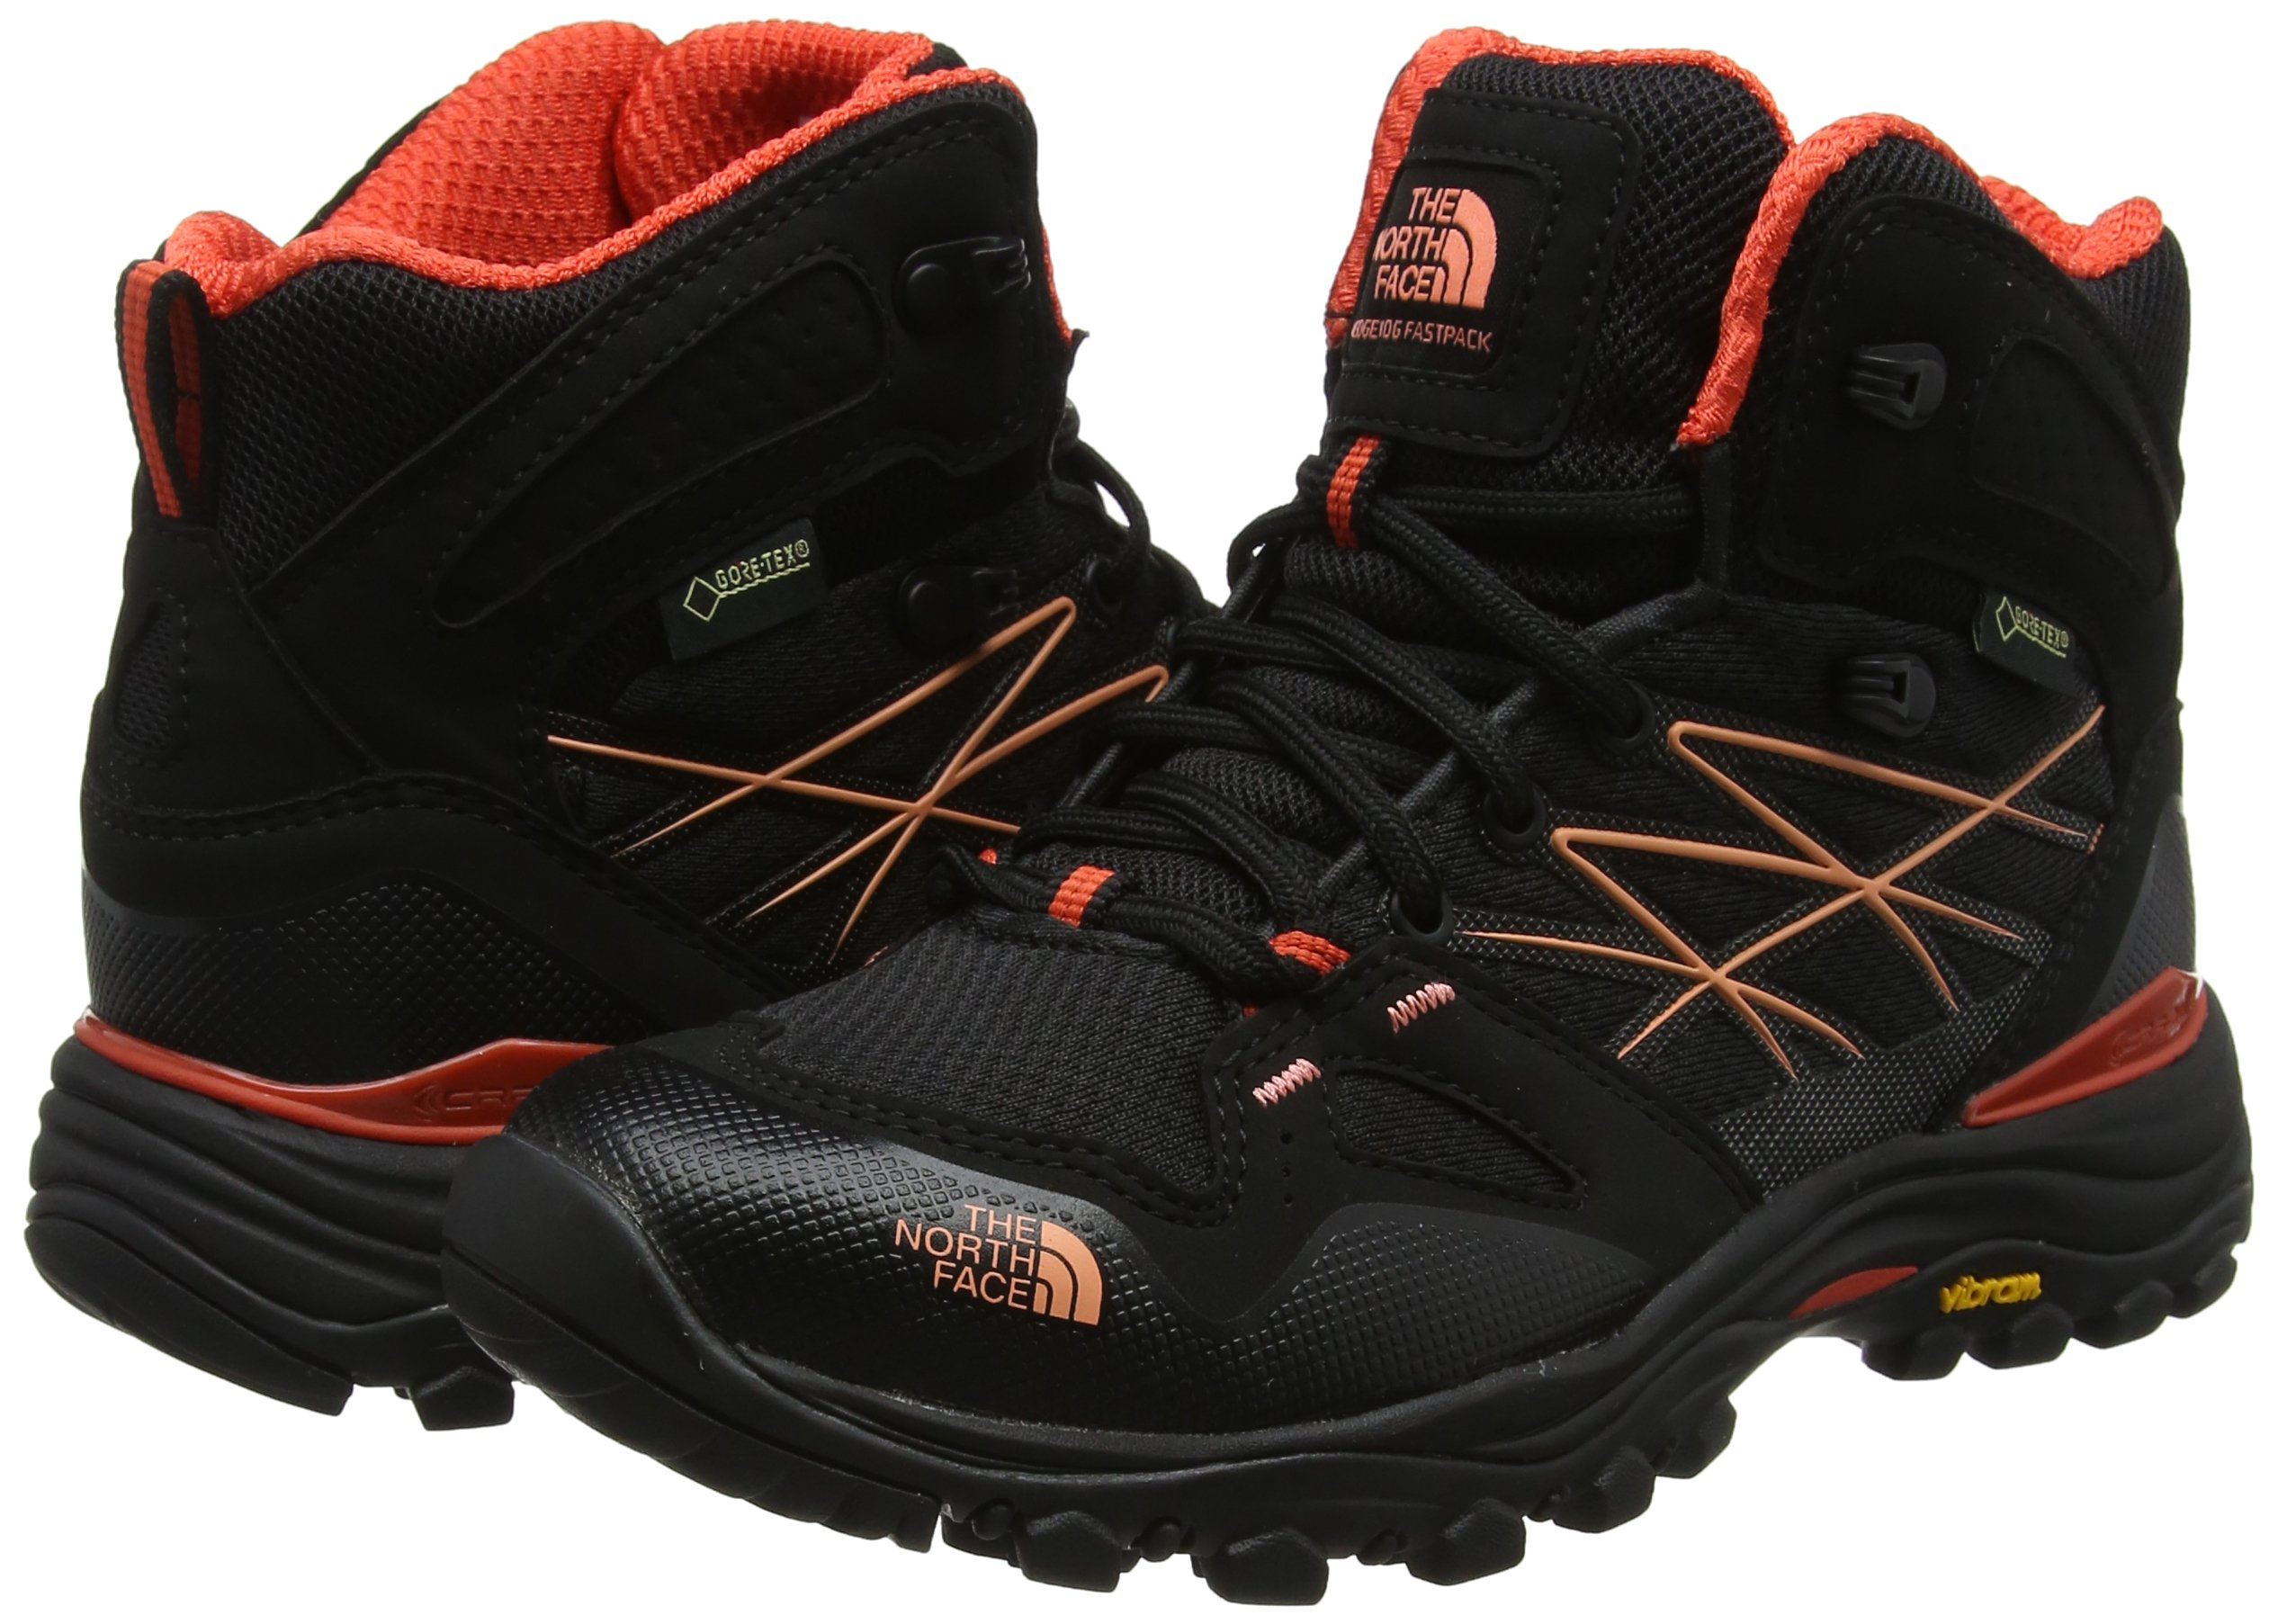 81iqG0PRJCL - THE NORTH FACE Women's Hedgehog Fastpack Mid GTX High Rise Hiking Boots